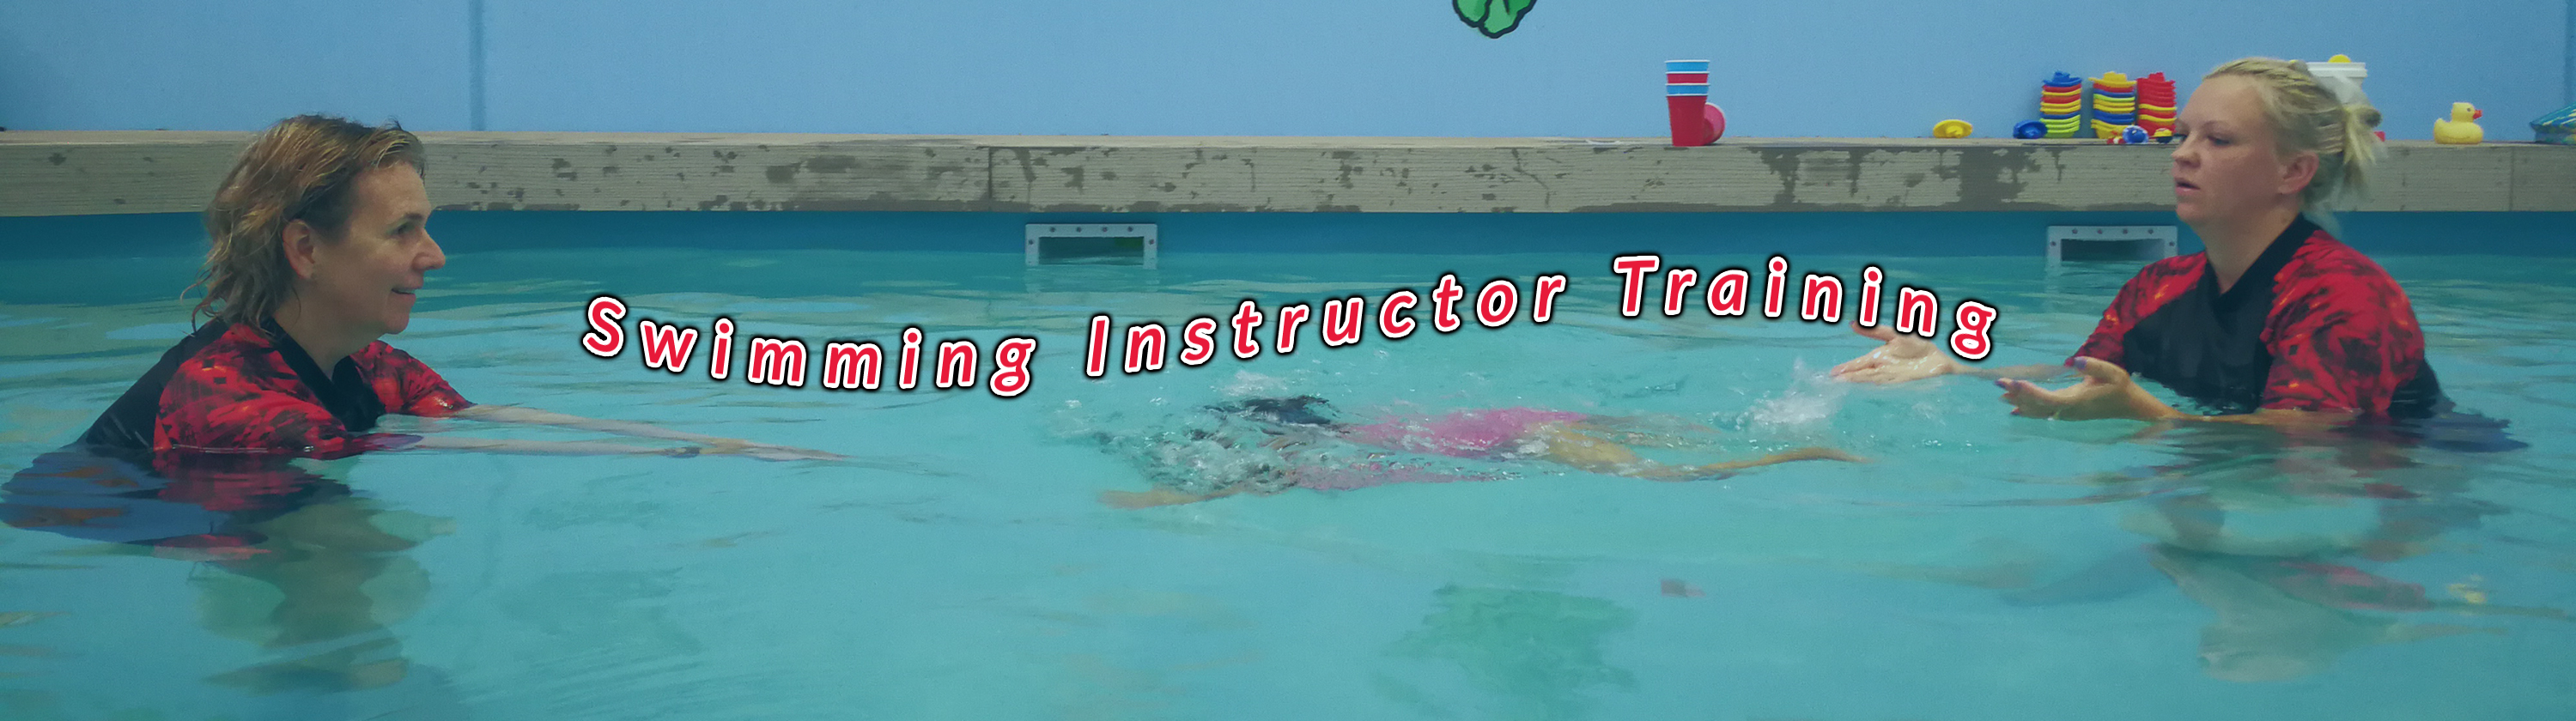 Waterwise_Swimming_Instructor_Training_Perth